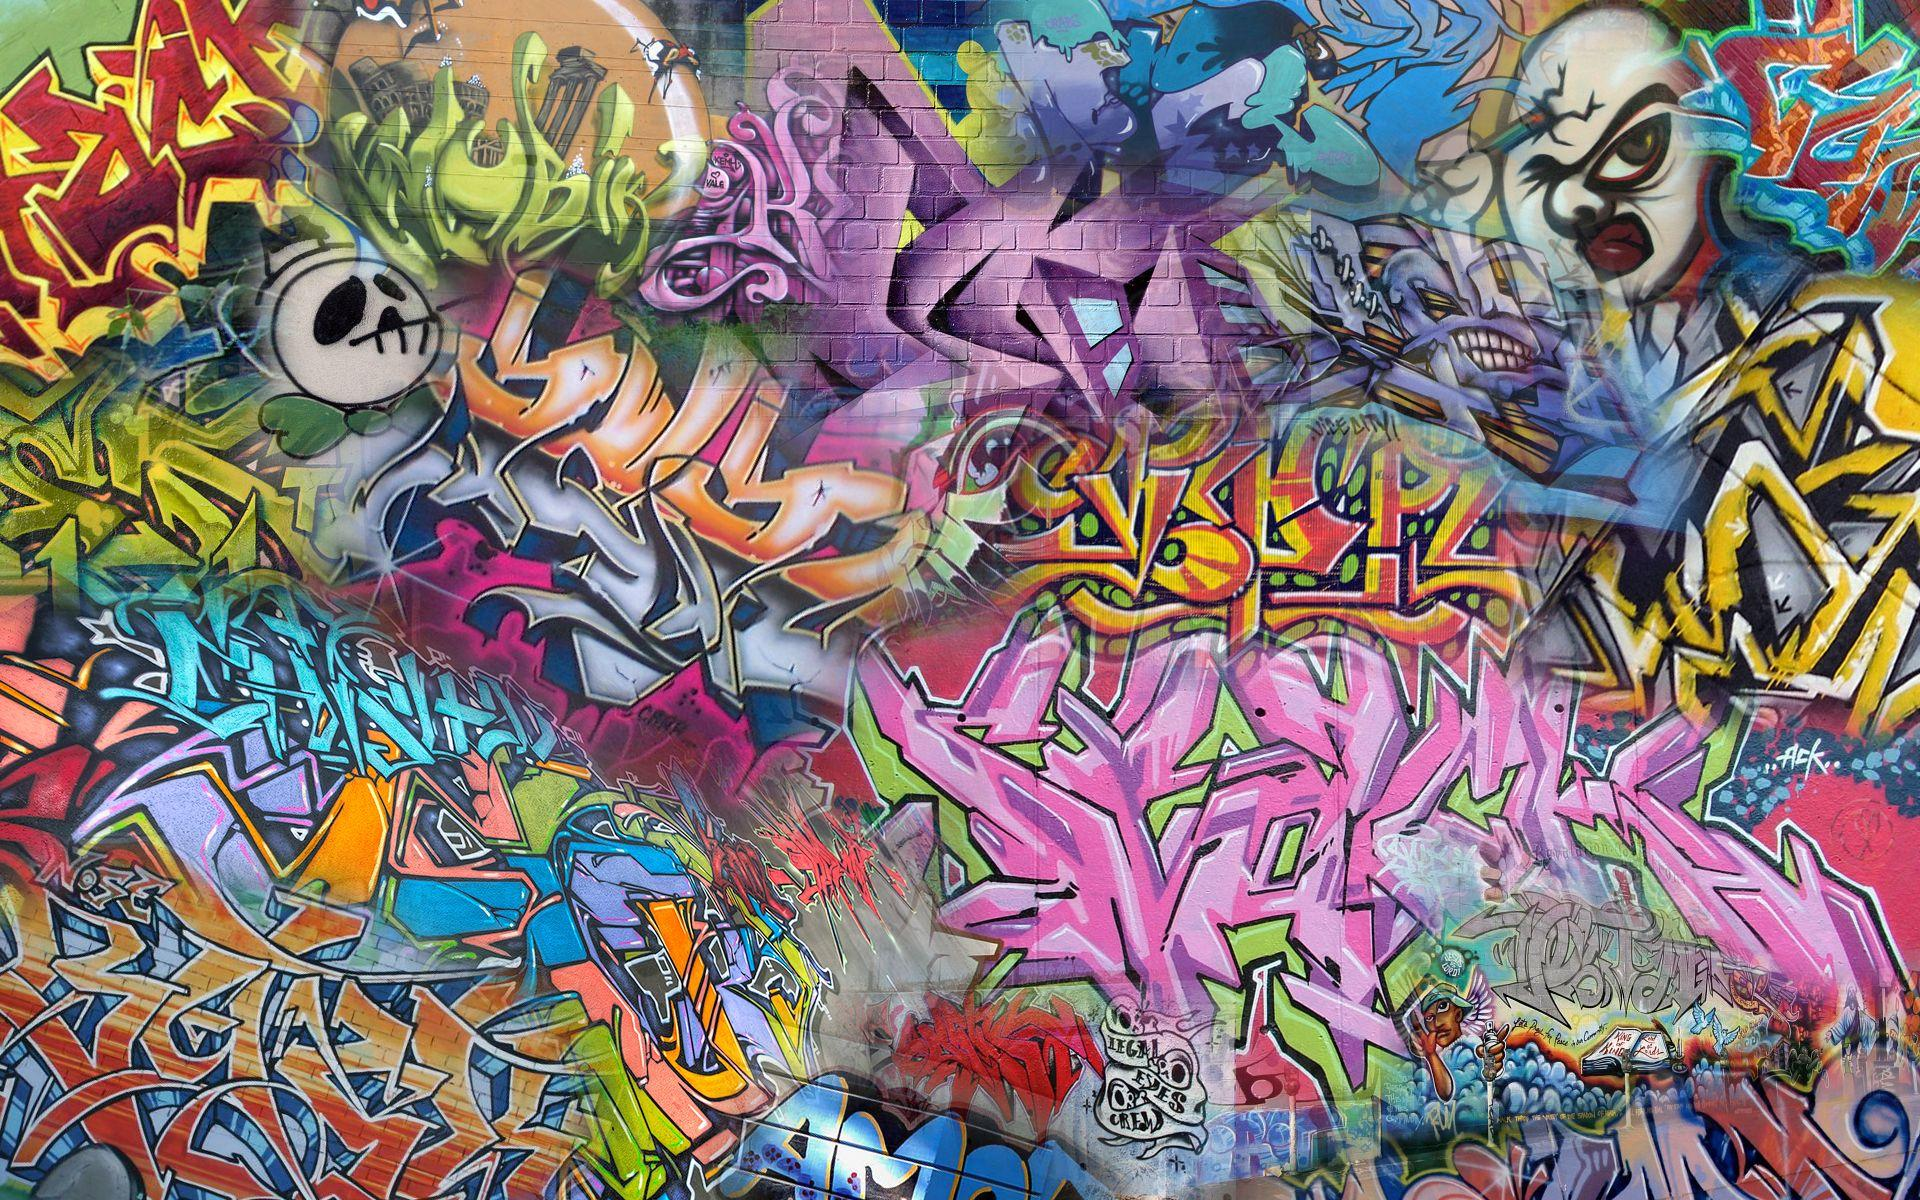 Free graffiti art wallpapers 1080p long wallpapers